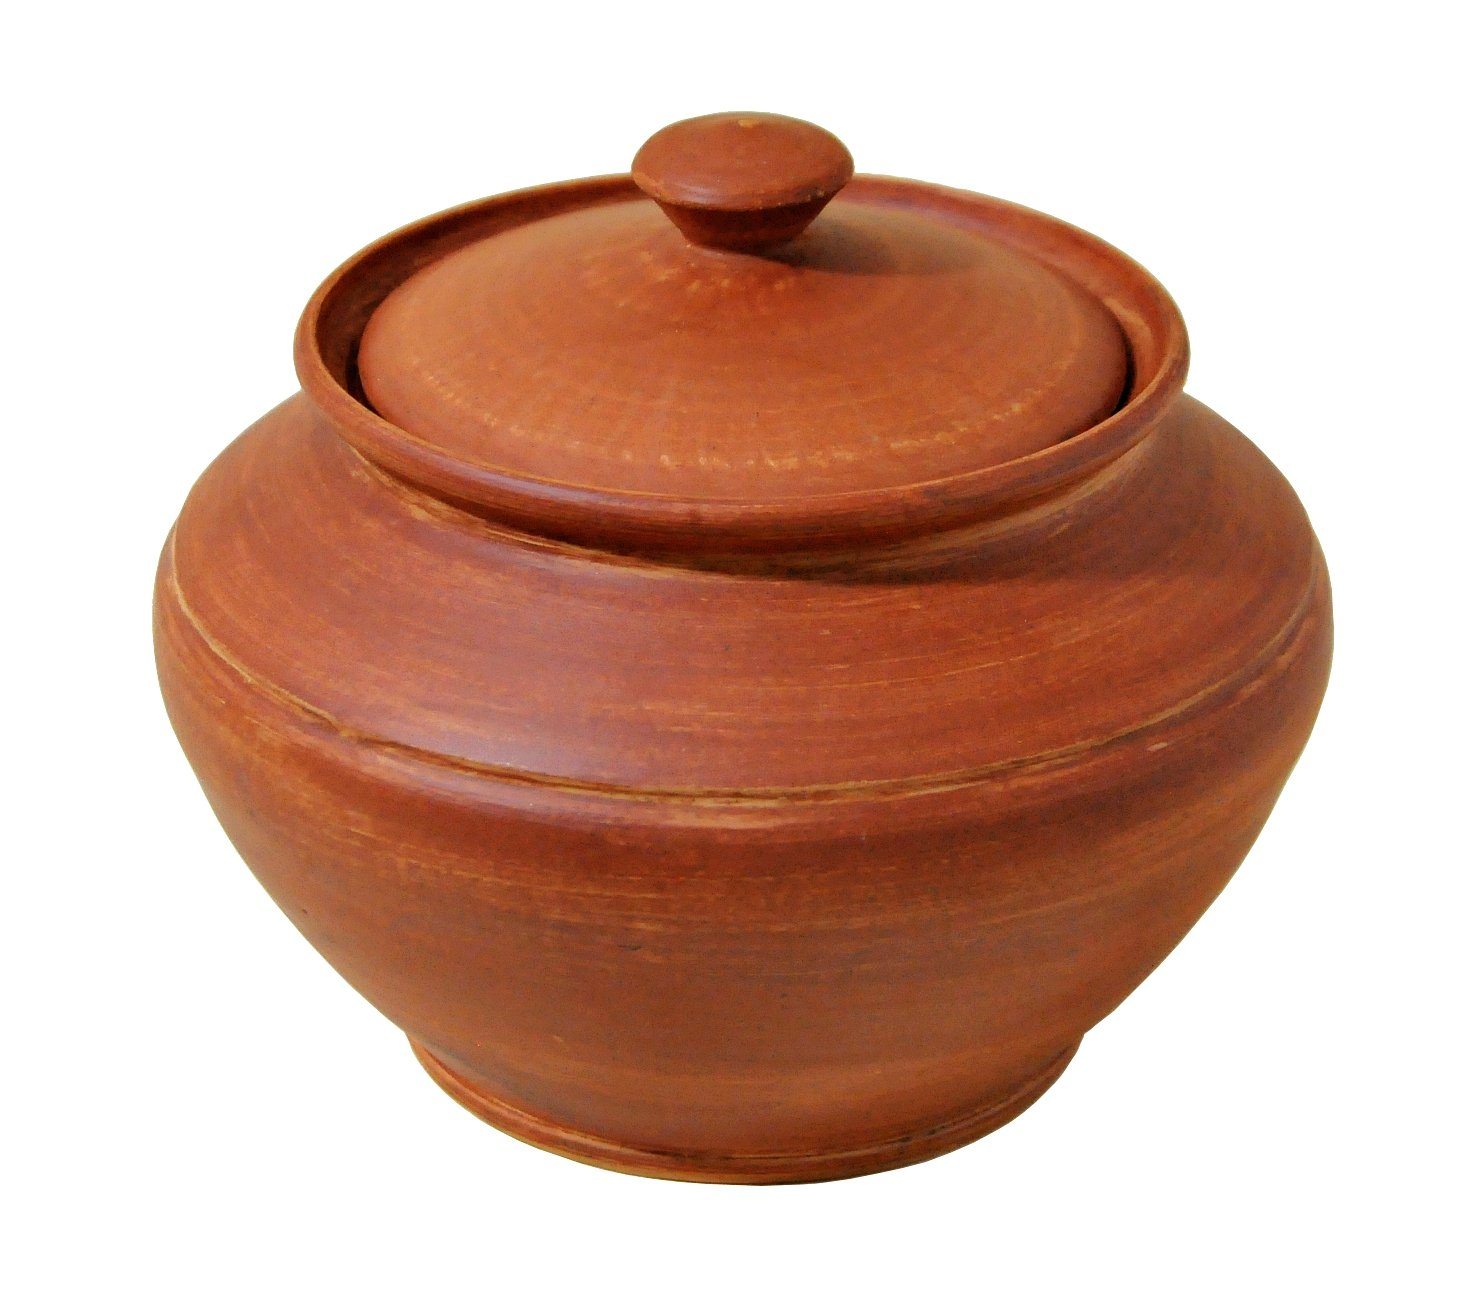 Handmade 50oz 1.5L Ceramic Cooking Pot Red Clay Kitchen Artisan Cookware Semin